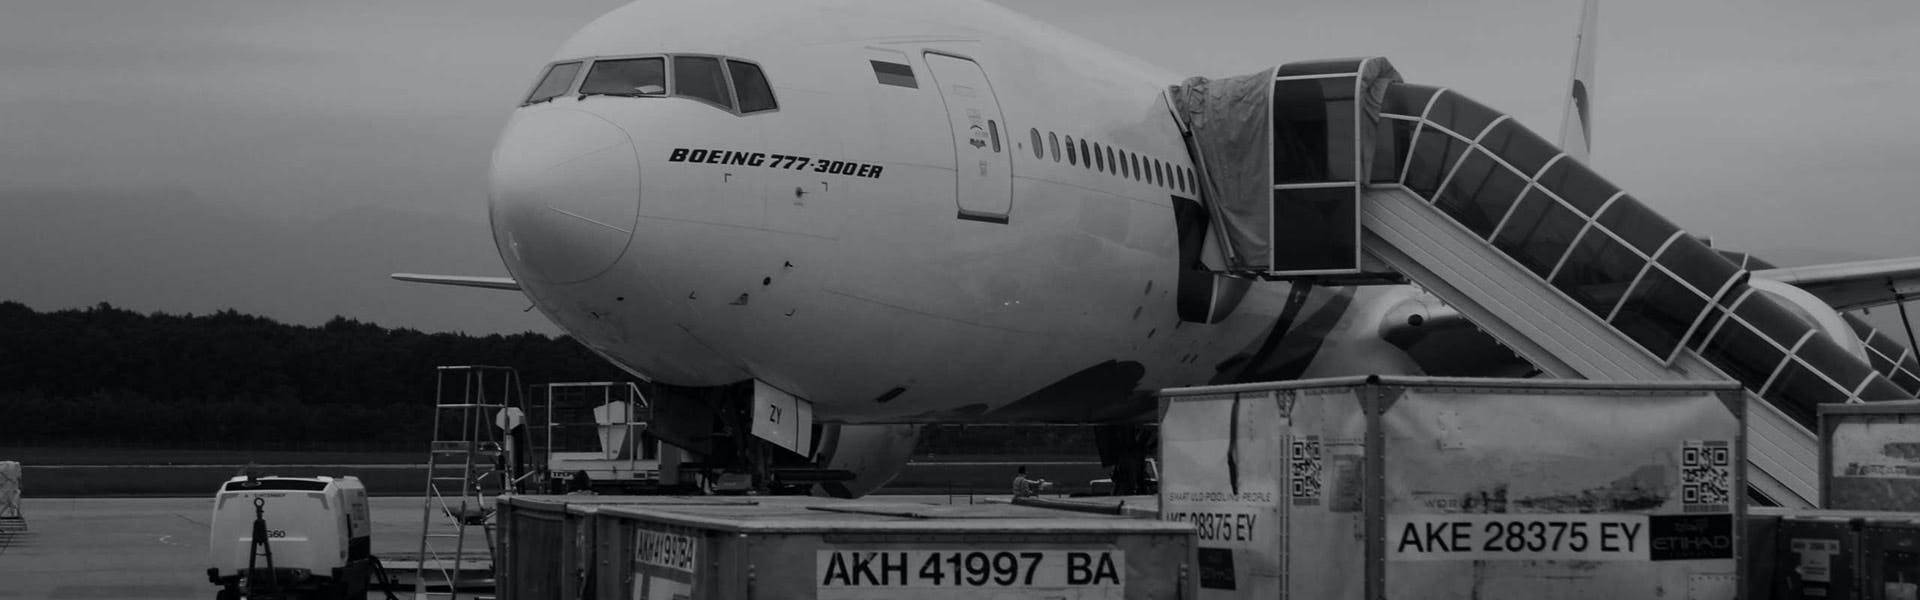 Two cargo containers in front of an aircraft boeing 777 300 ER that is waiting in the airport tarmac.